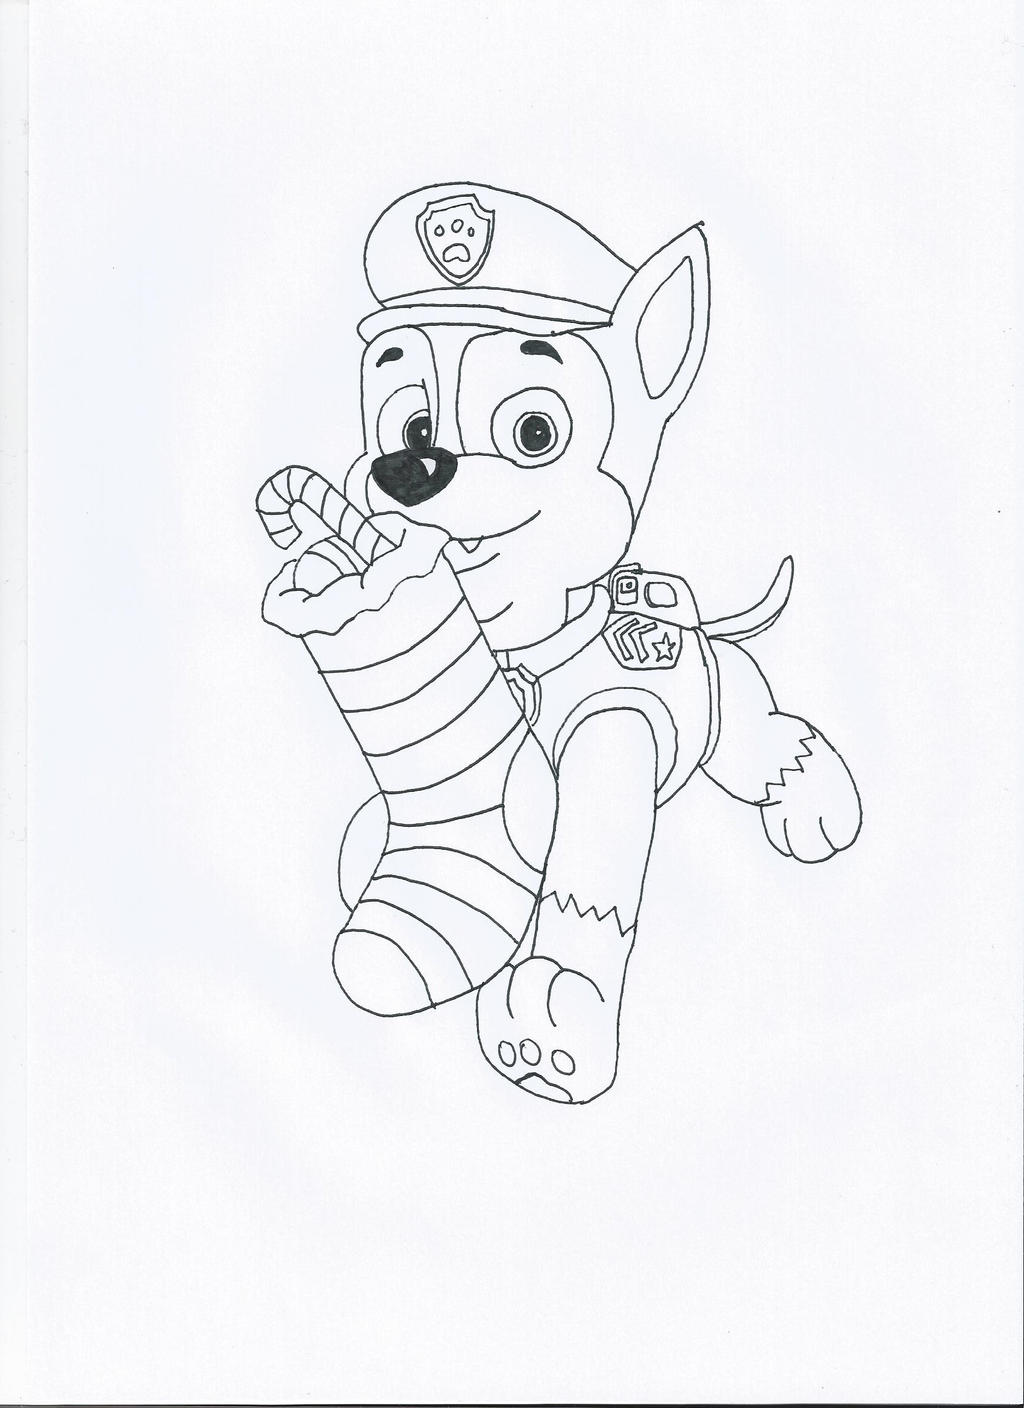 Paw Patrol Christmas Chase By Pawpatrolfan66 On Deviantart